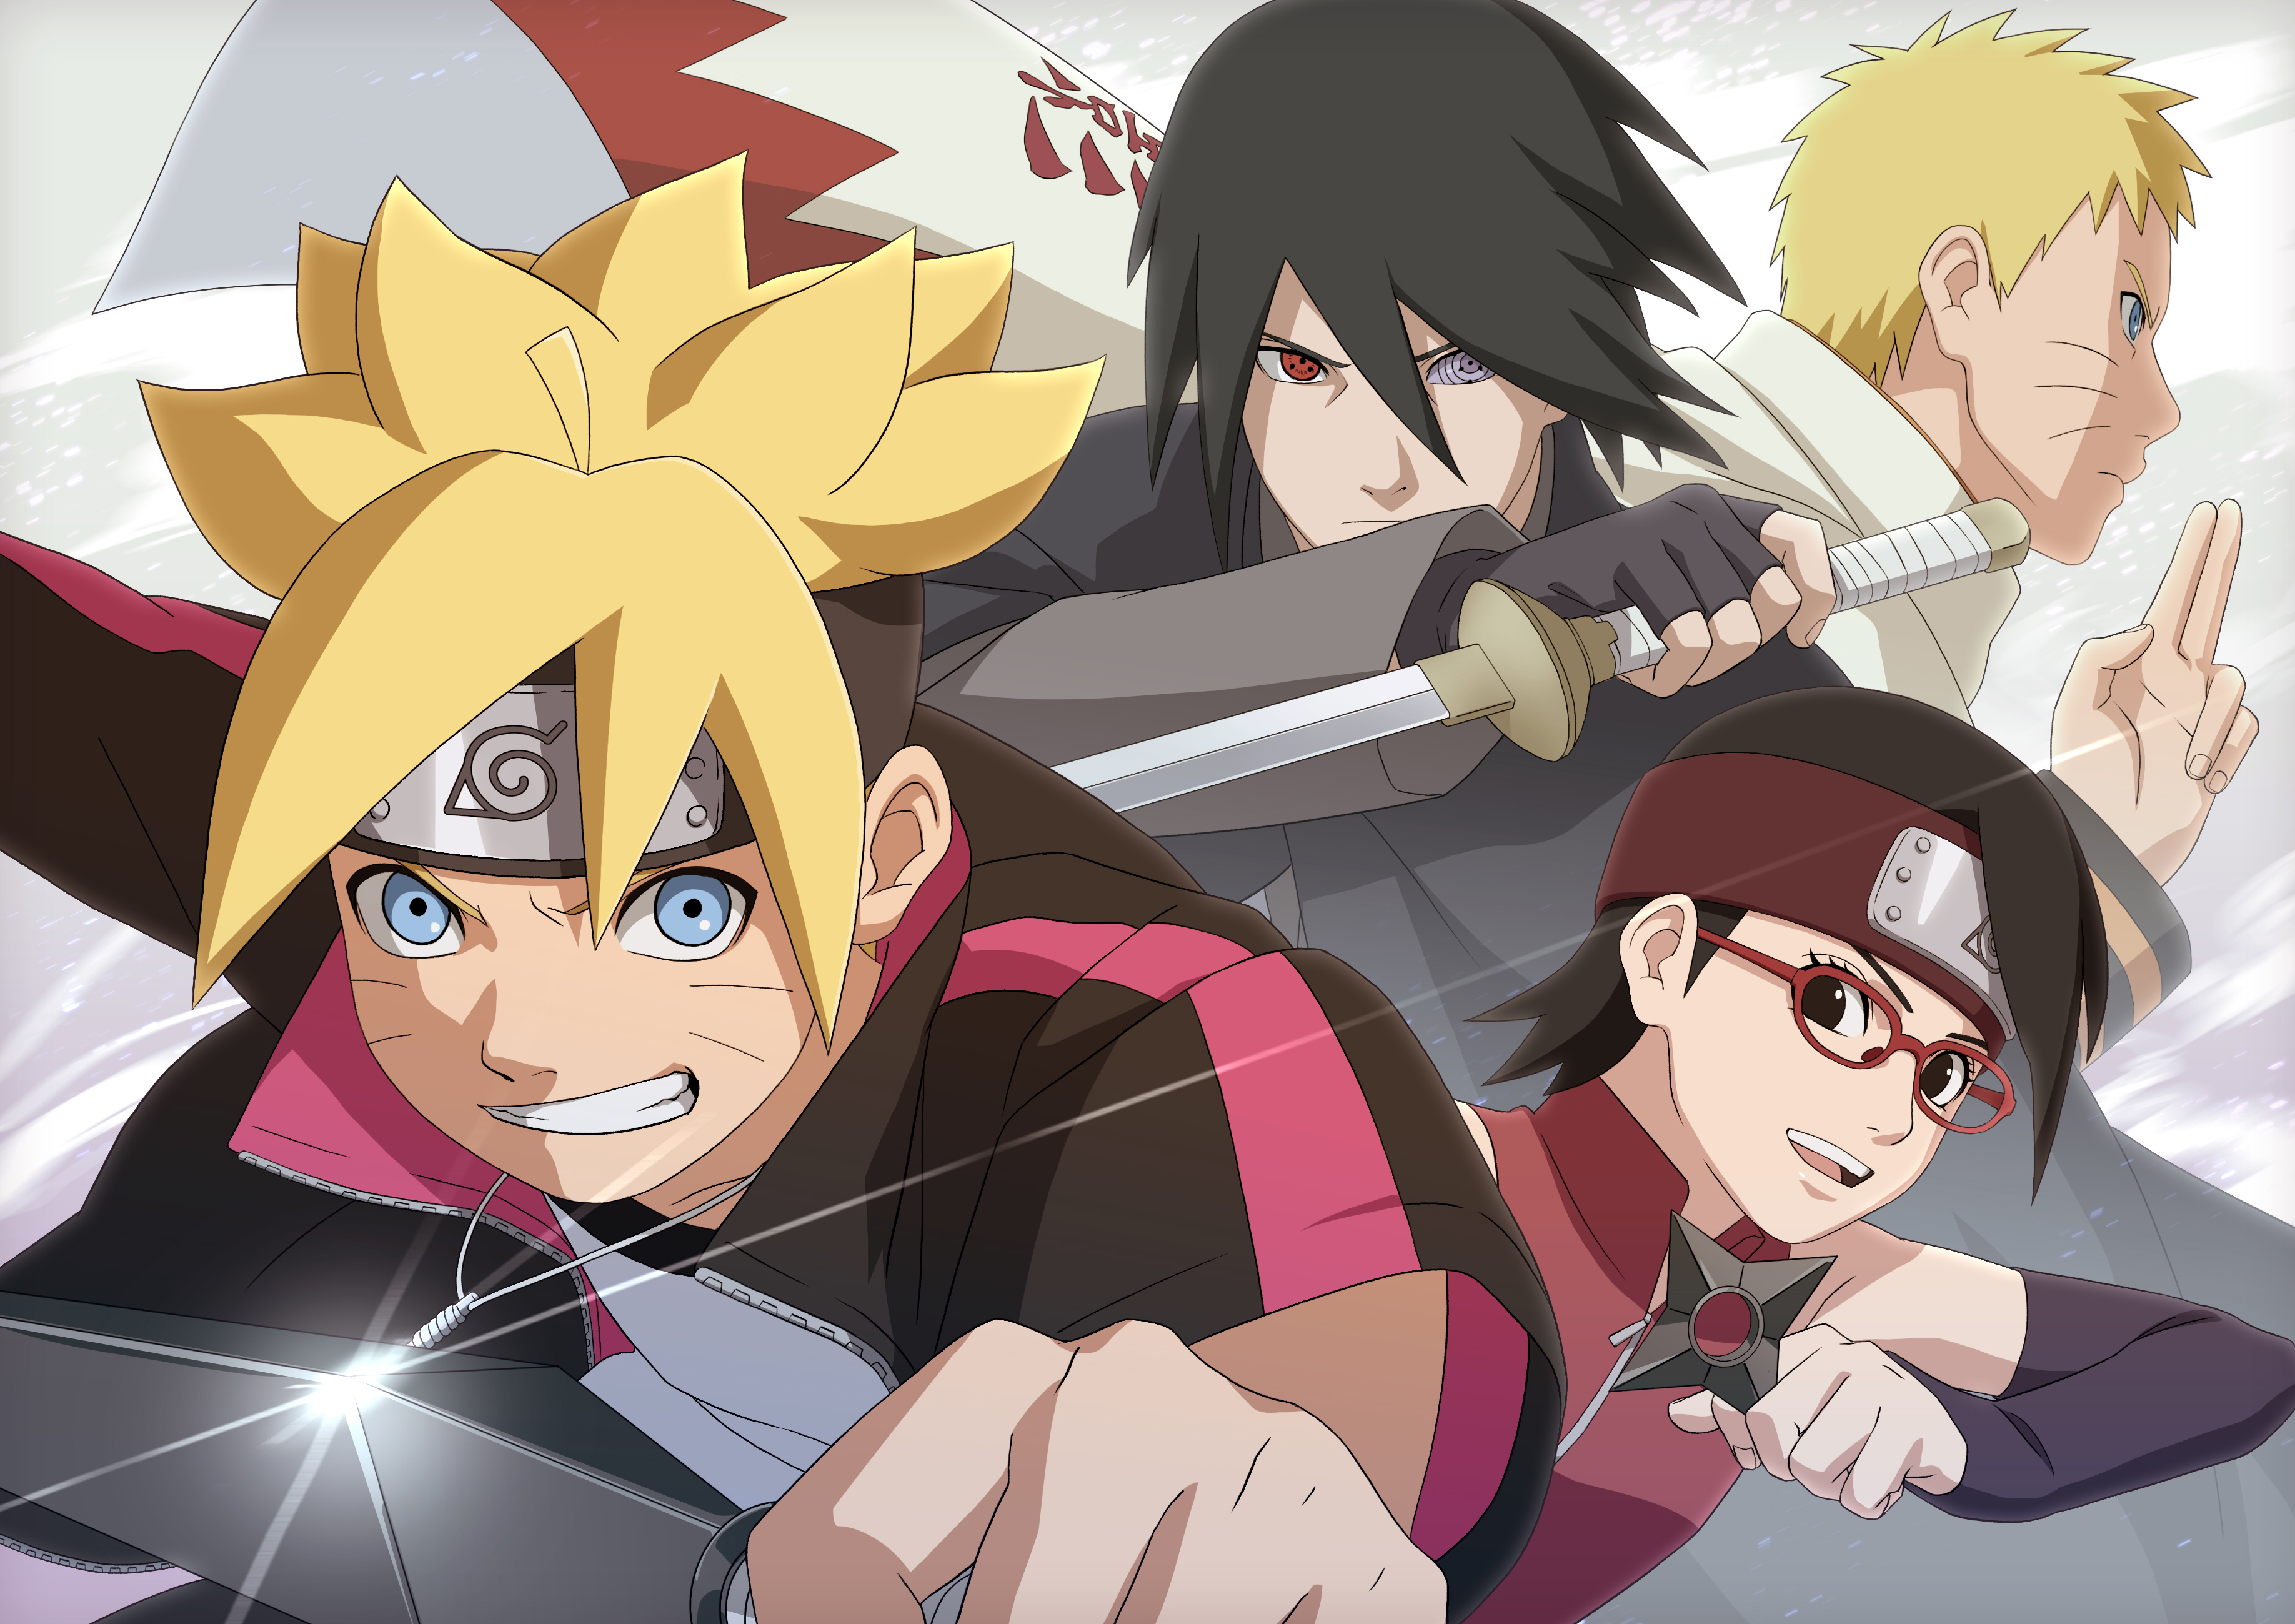 Road to Boruto Art with Boruto, Sarada, Naruto, and Sasuke (Naruto Storm 4)